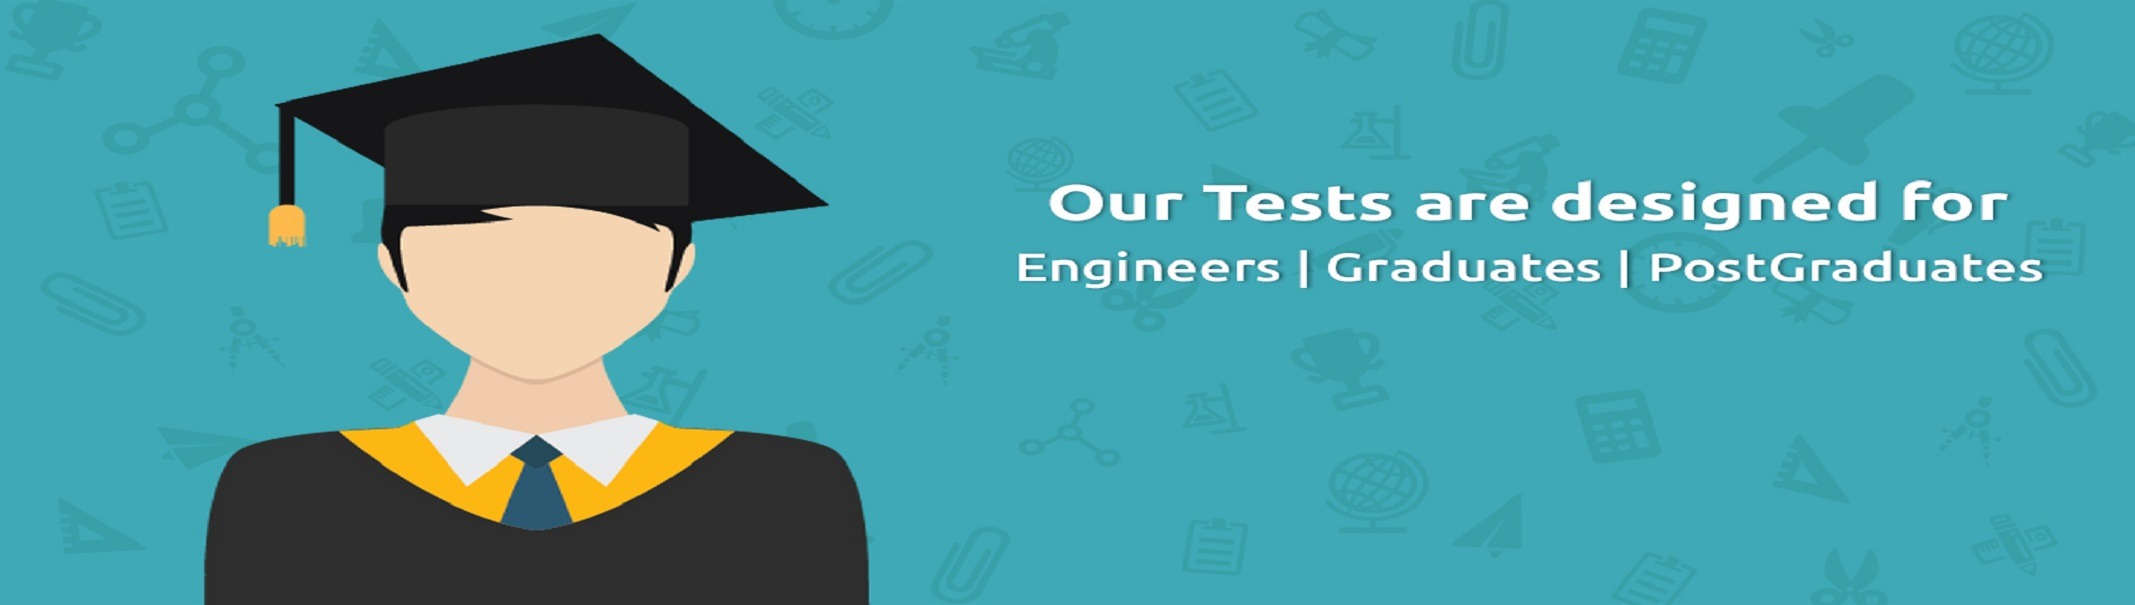 Our test is designed for